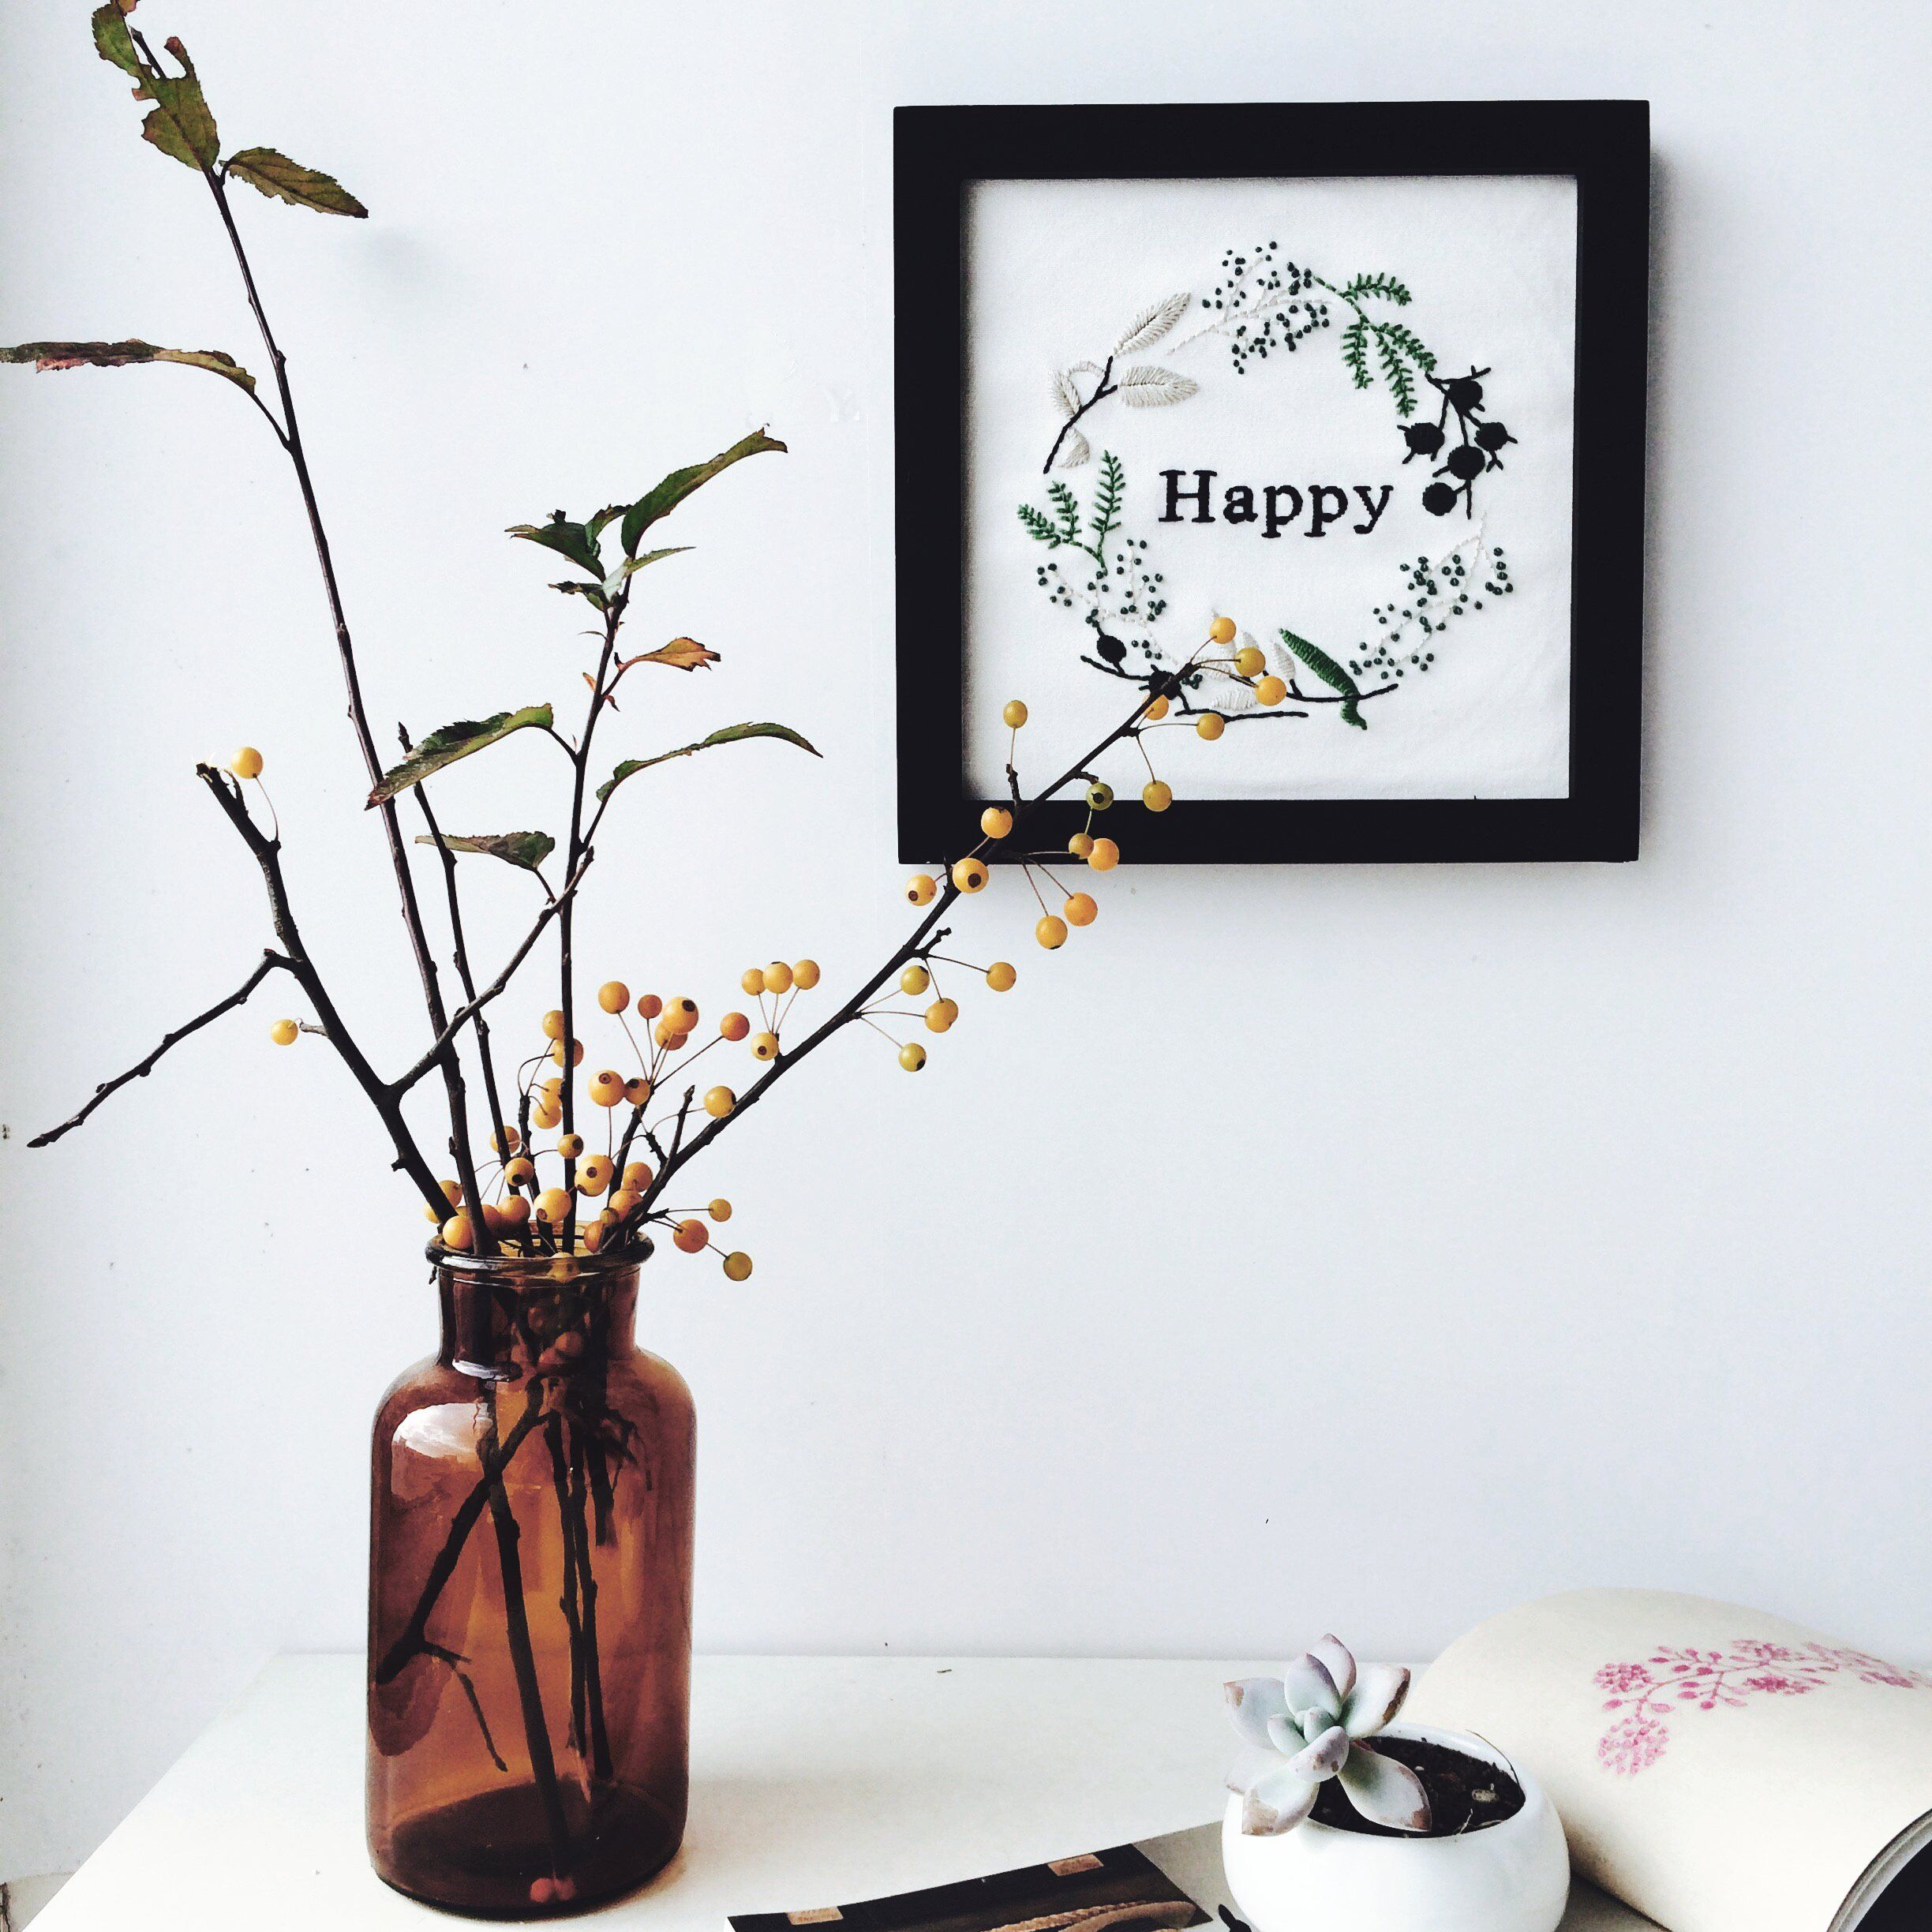 Usd 807 Solid Wood Square Wall Hanging Table Frame Embroidery